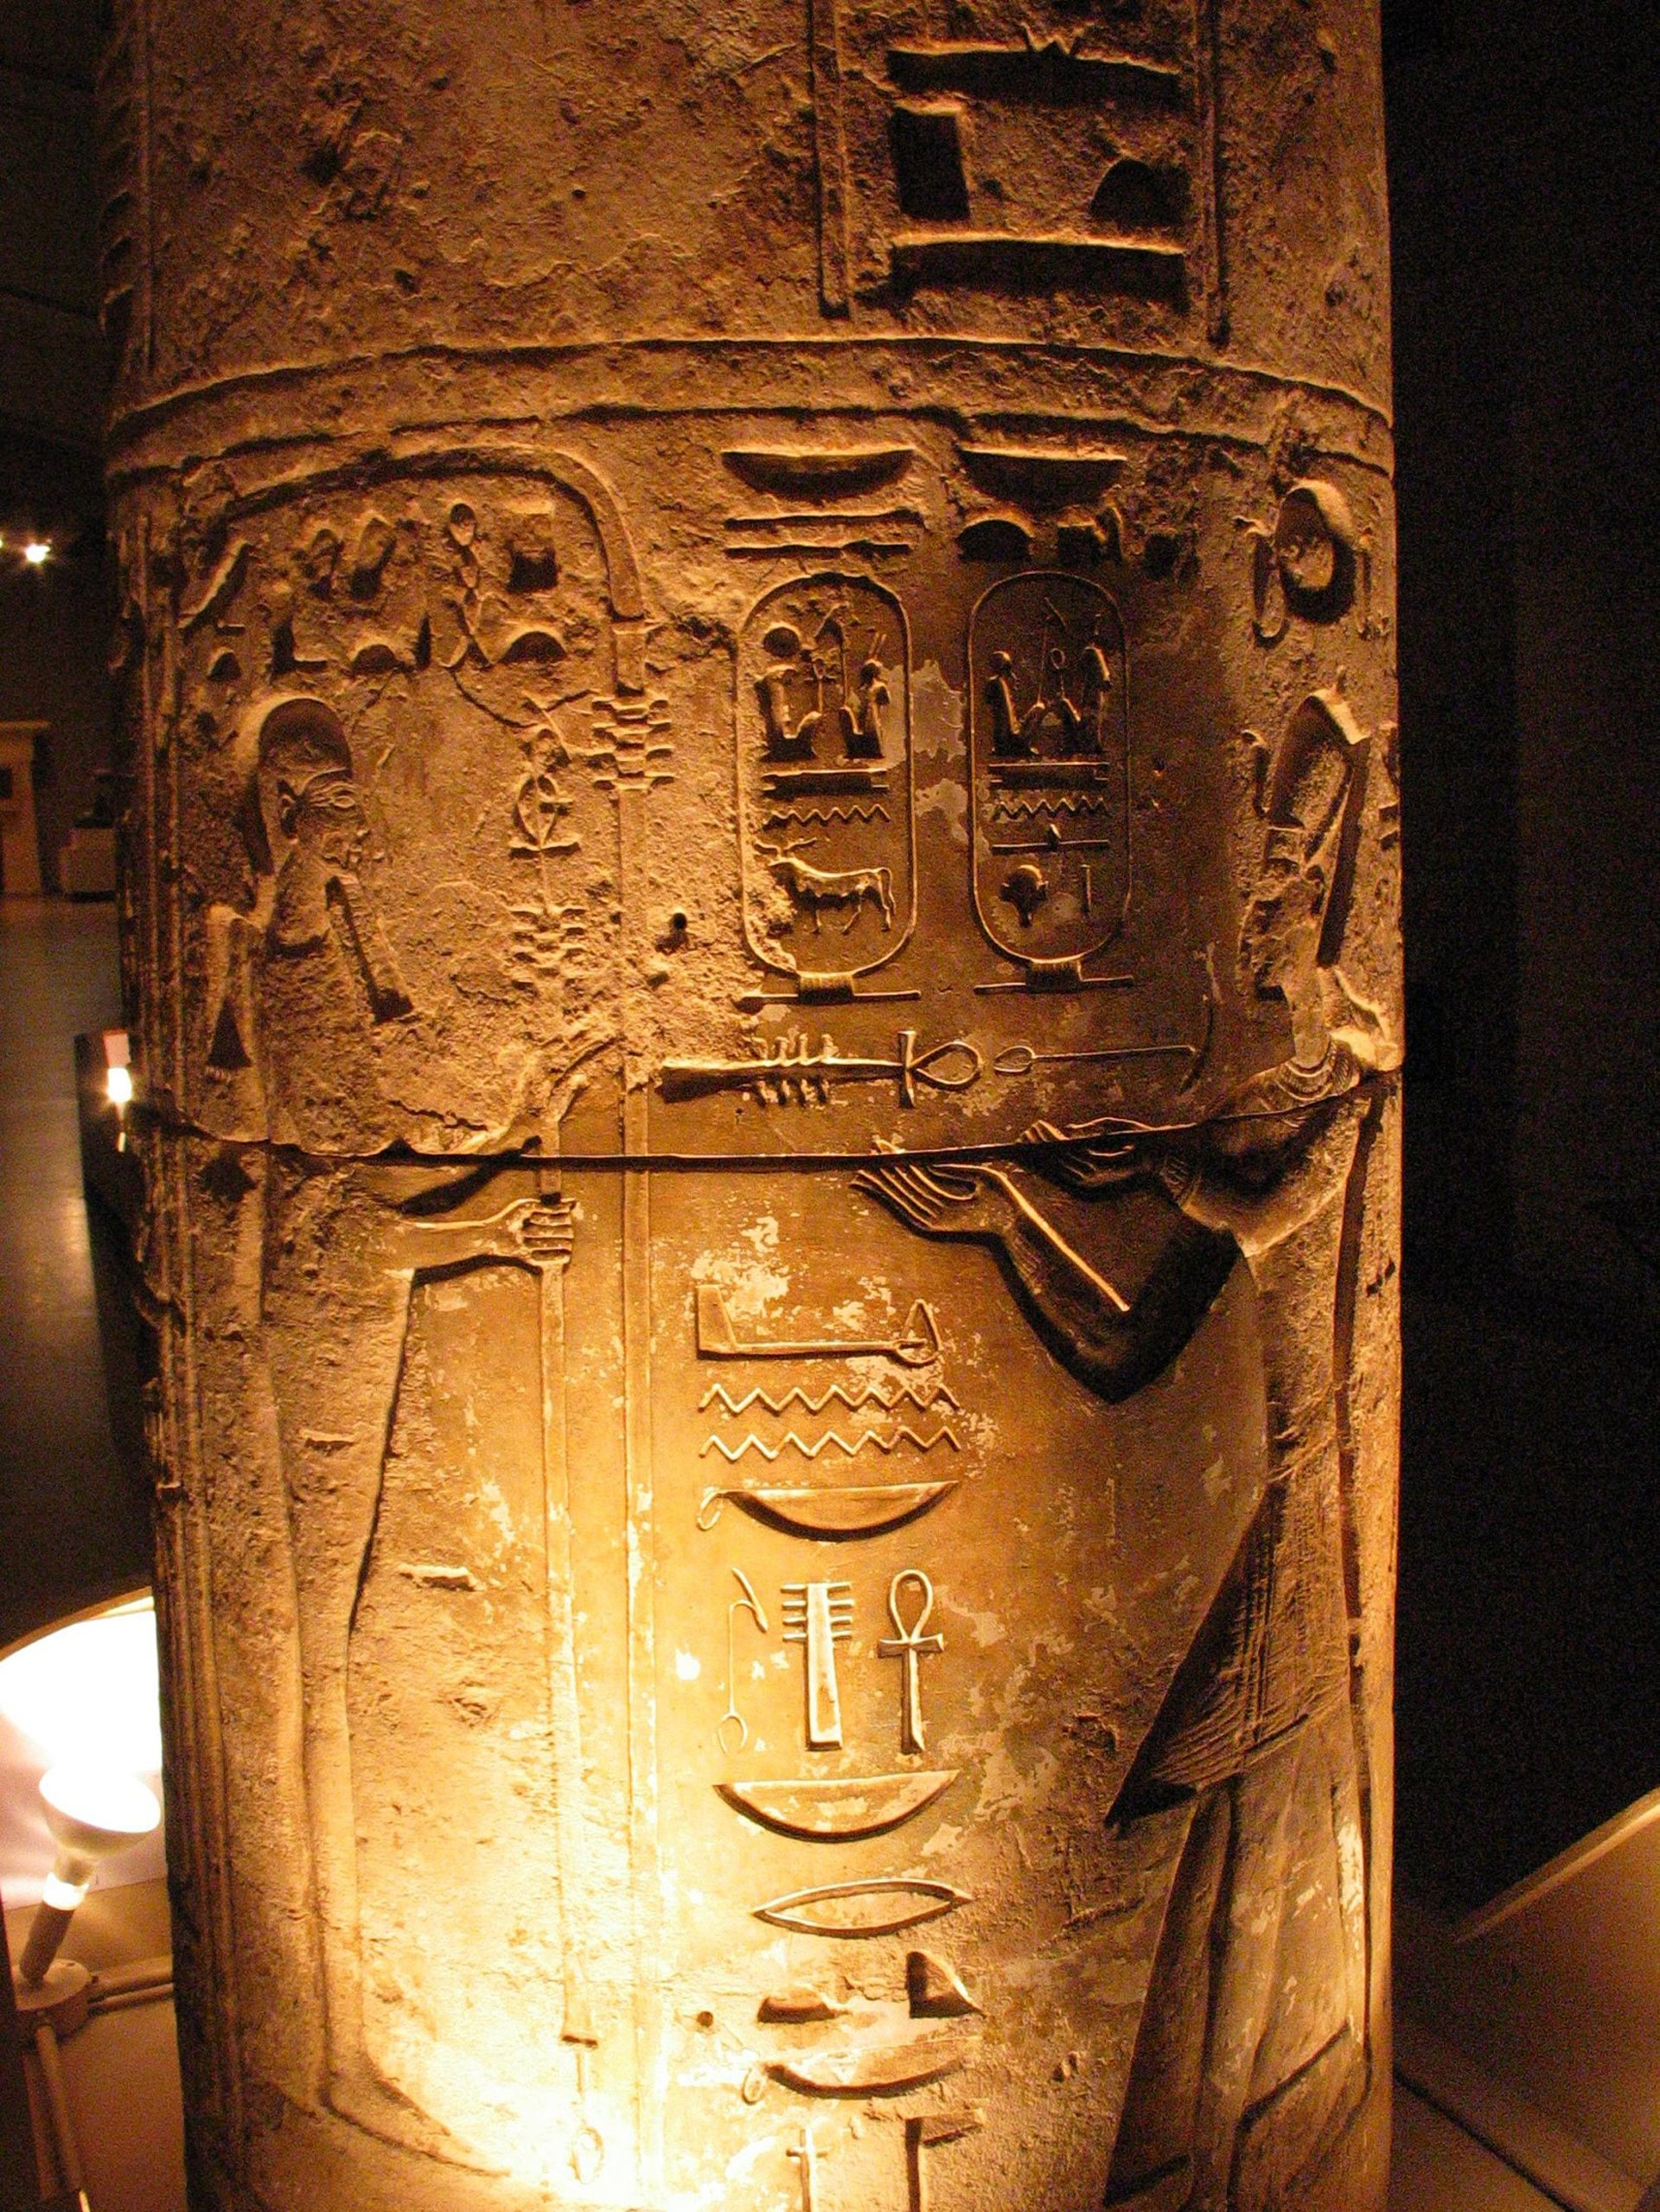 Merenptah makes an offering to the god Ptah on this stone column. From the Museum of Archaeology and Anthropology at the University of Pennsylvania, Philadelphia. The picture shows light shining on very well preserved images and hieroglyphics carved onto a stone column.